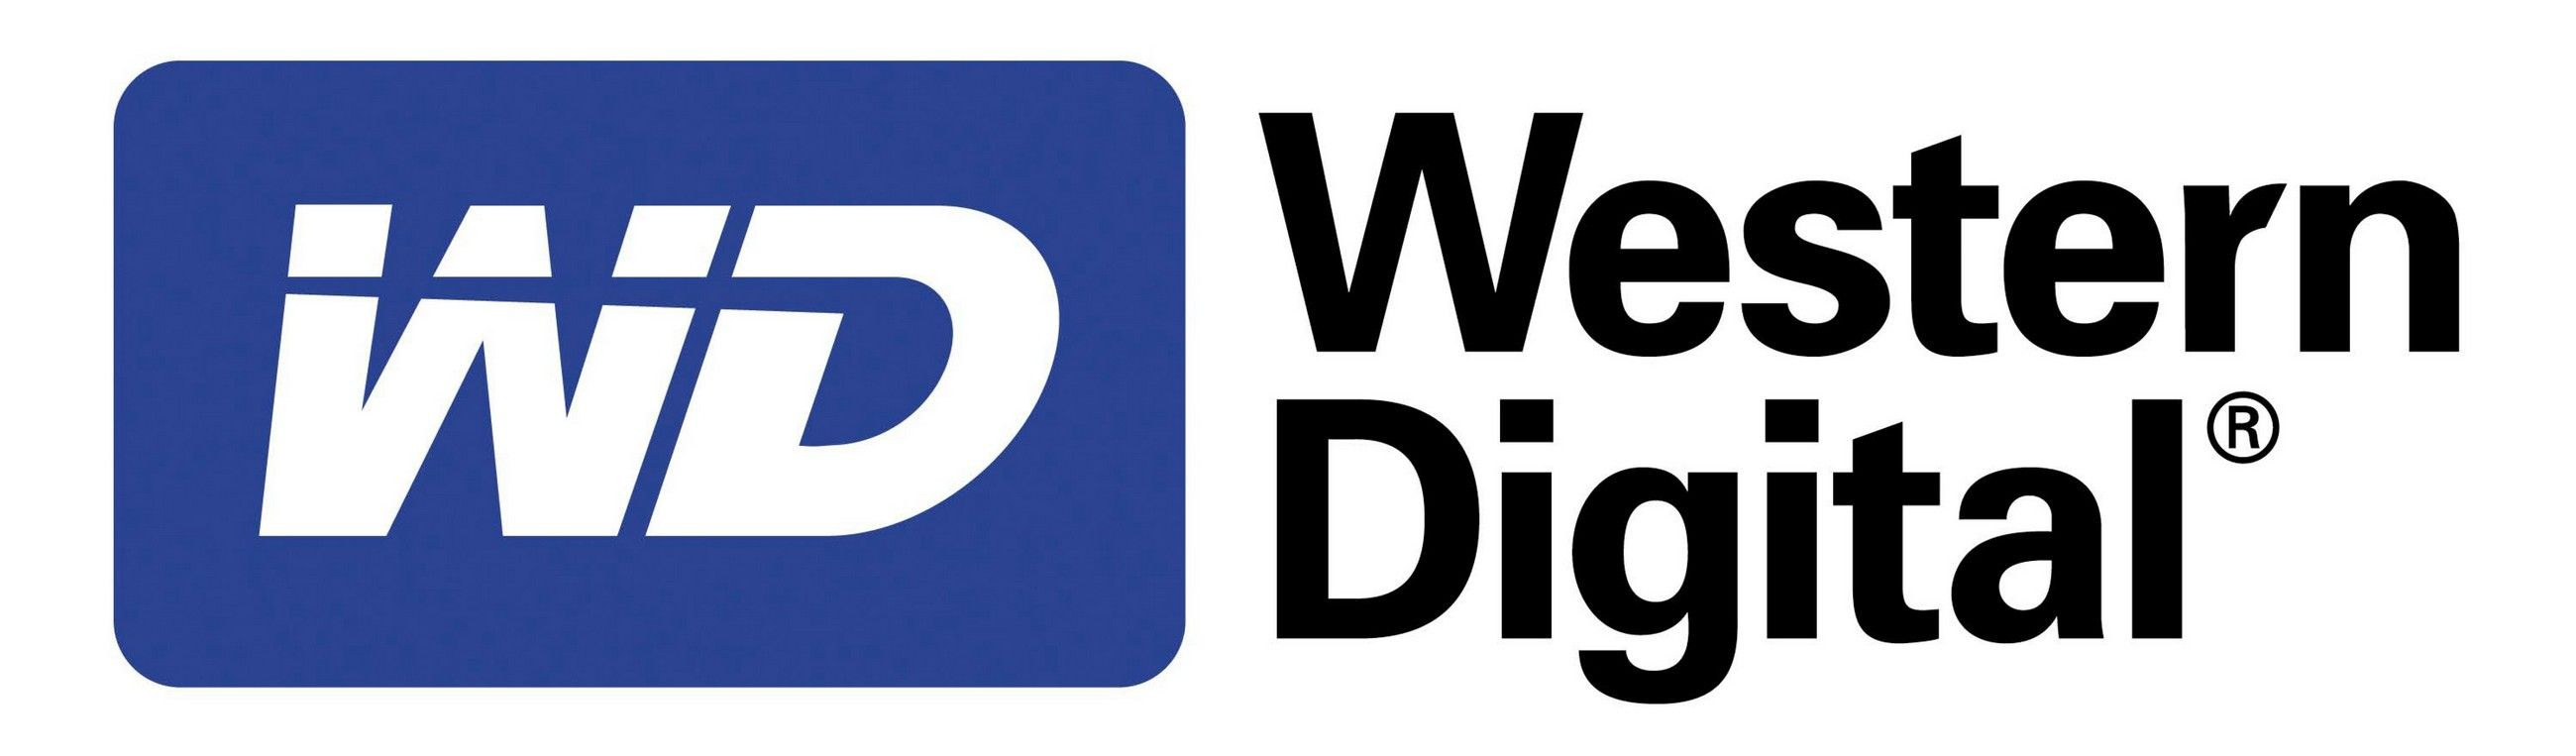 Productos Western Digital